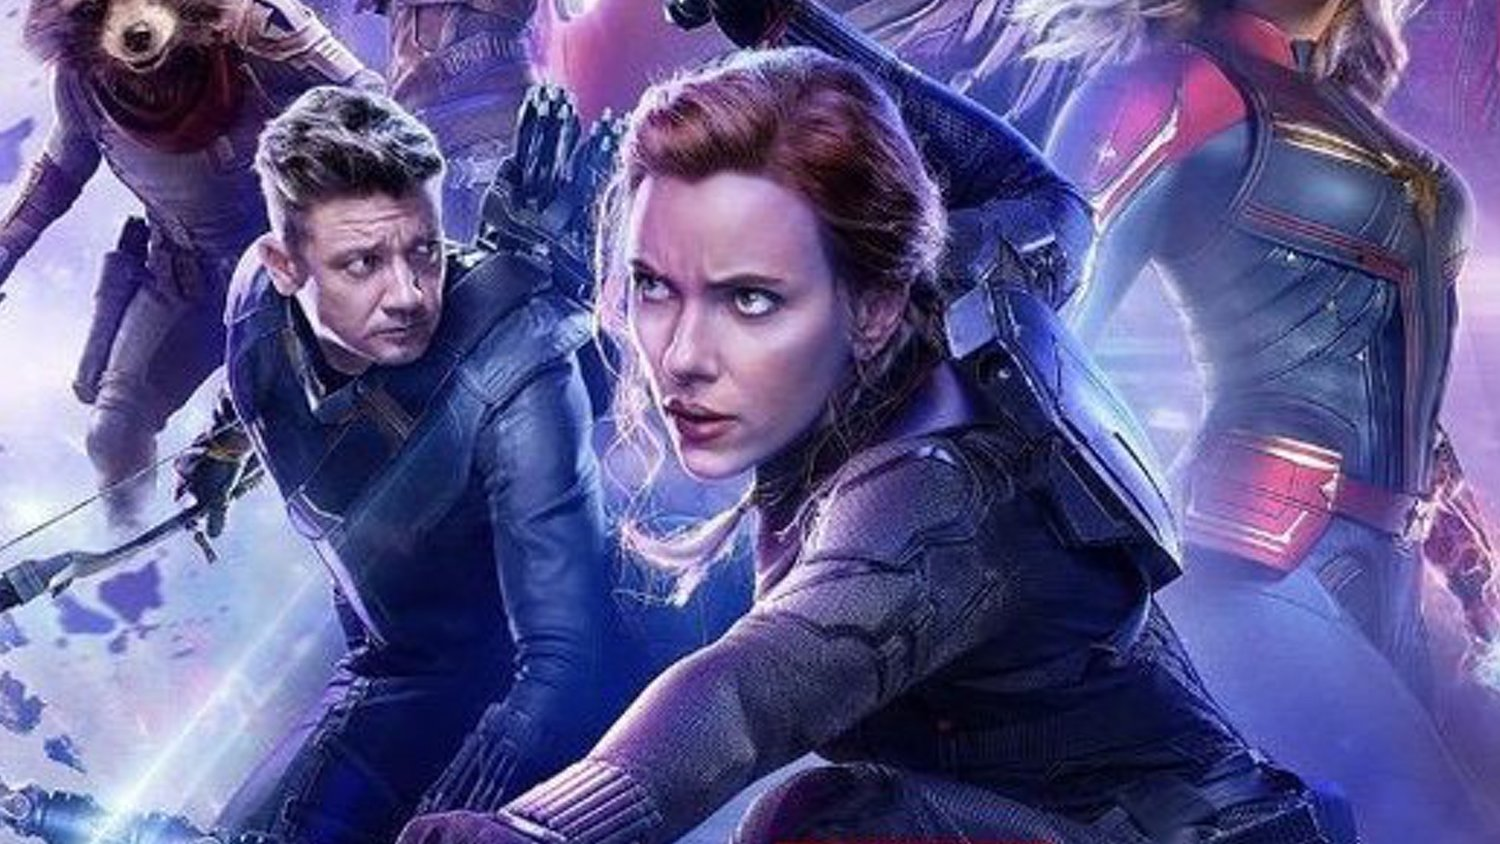 New Avengers Endgame Trailer Highlights Every Mcu Film And Features